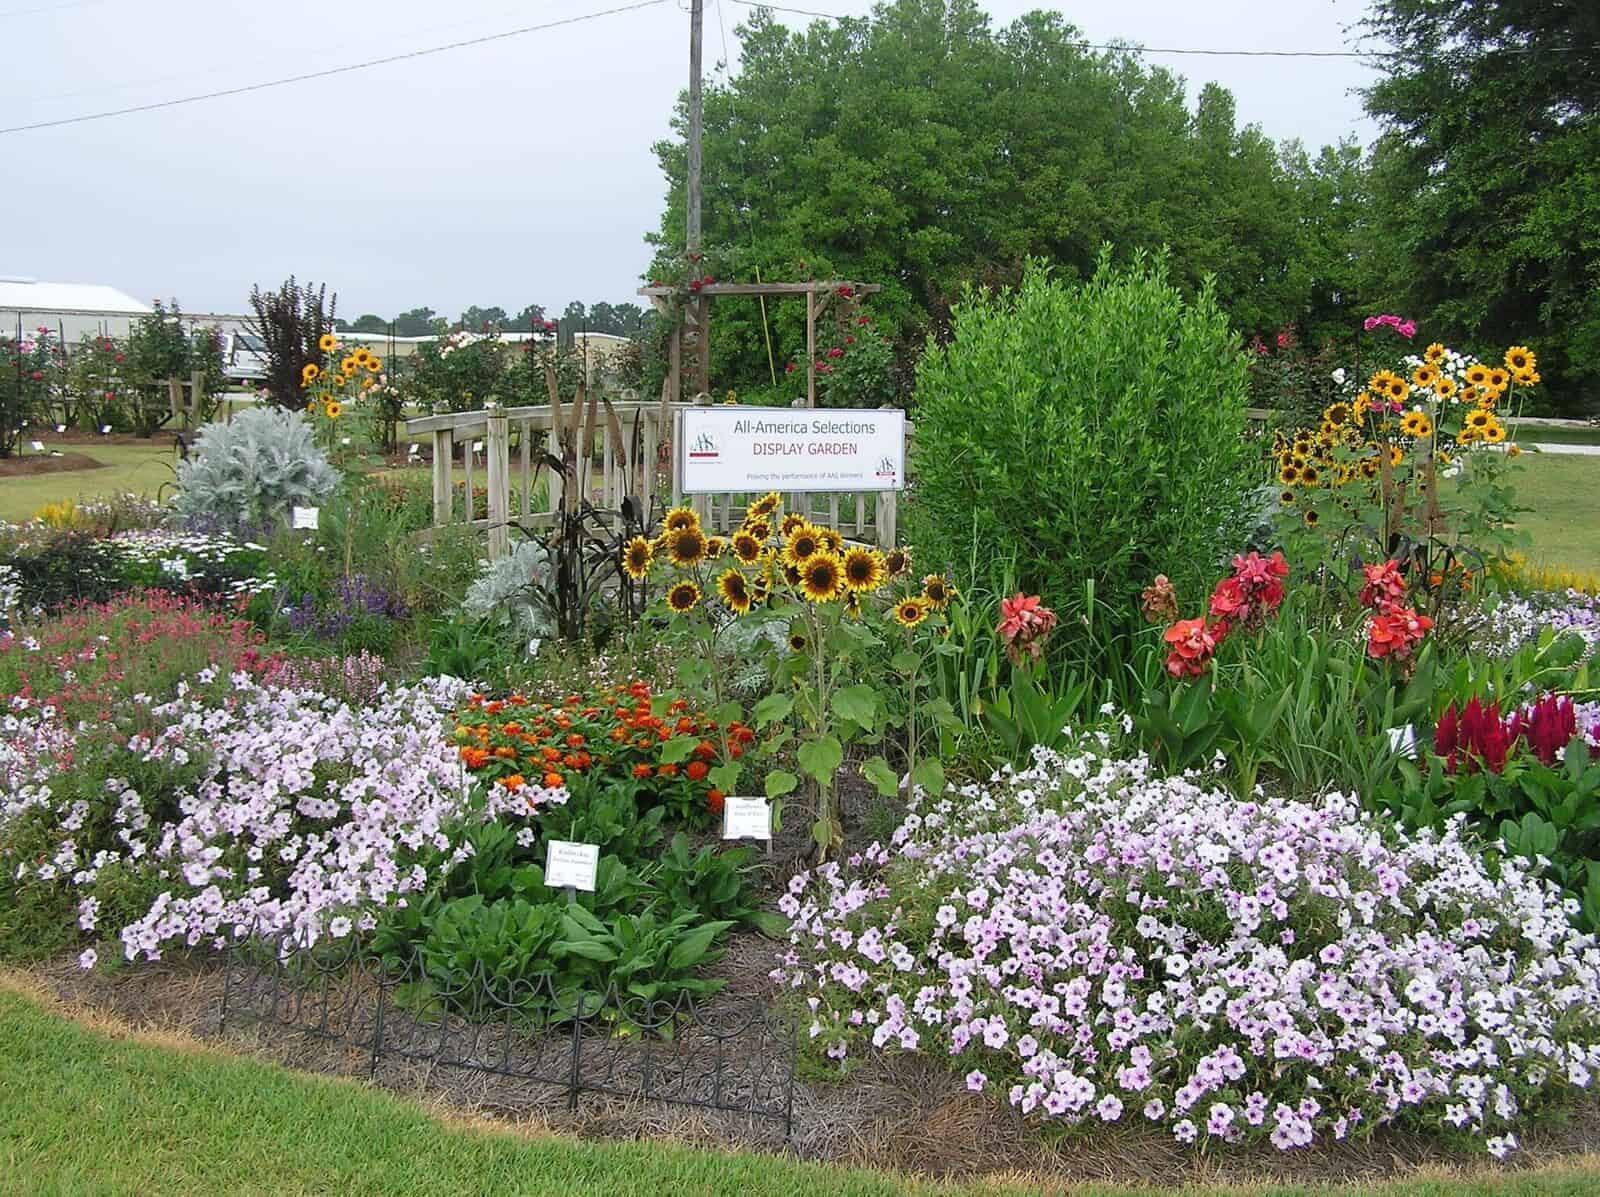 The Wholesale House >> Where Can I Find an AAS Display Garden - All-America Selections | All-America Selections